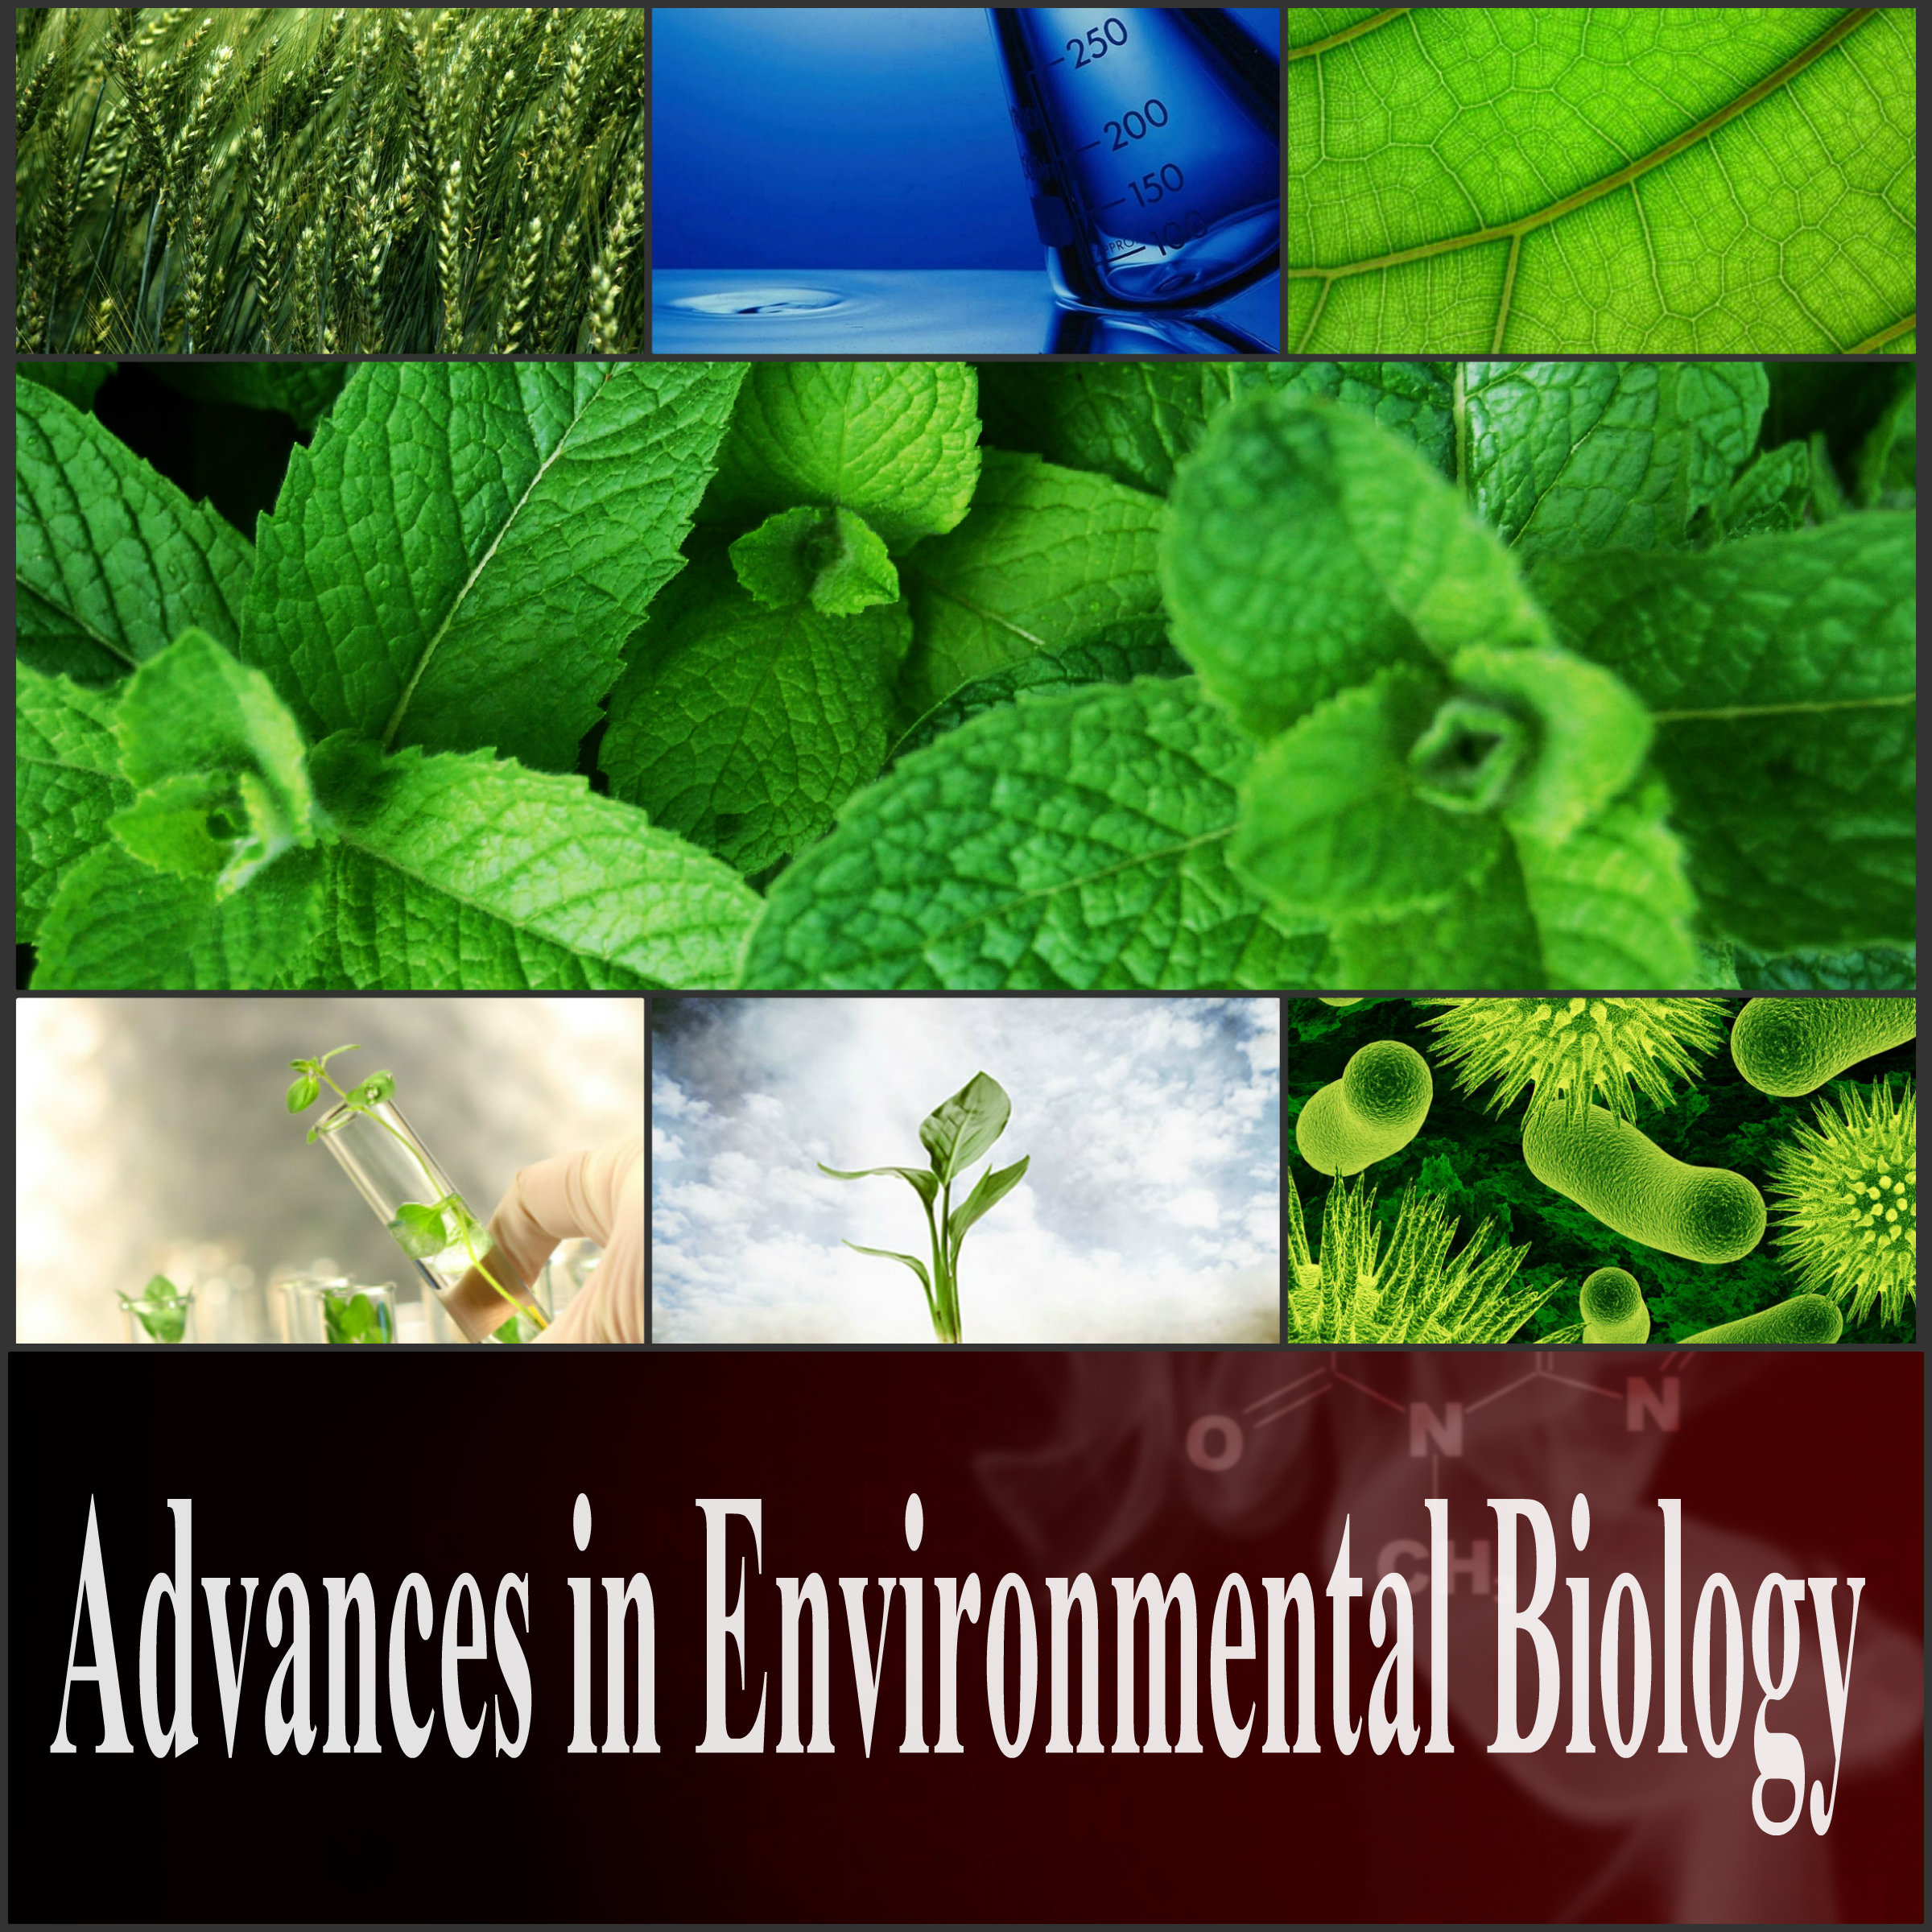 environmental biology research papers Environmental biology bs 105 research paper guidelines this semester you are required to write a formal research paper concerning an environmental  papers on the.